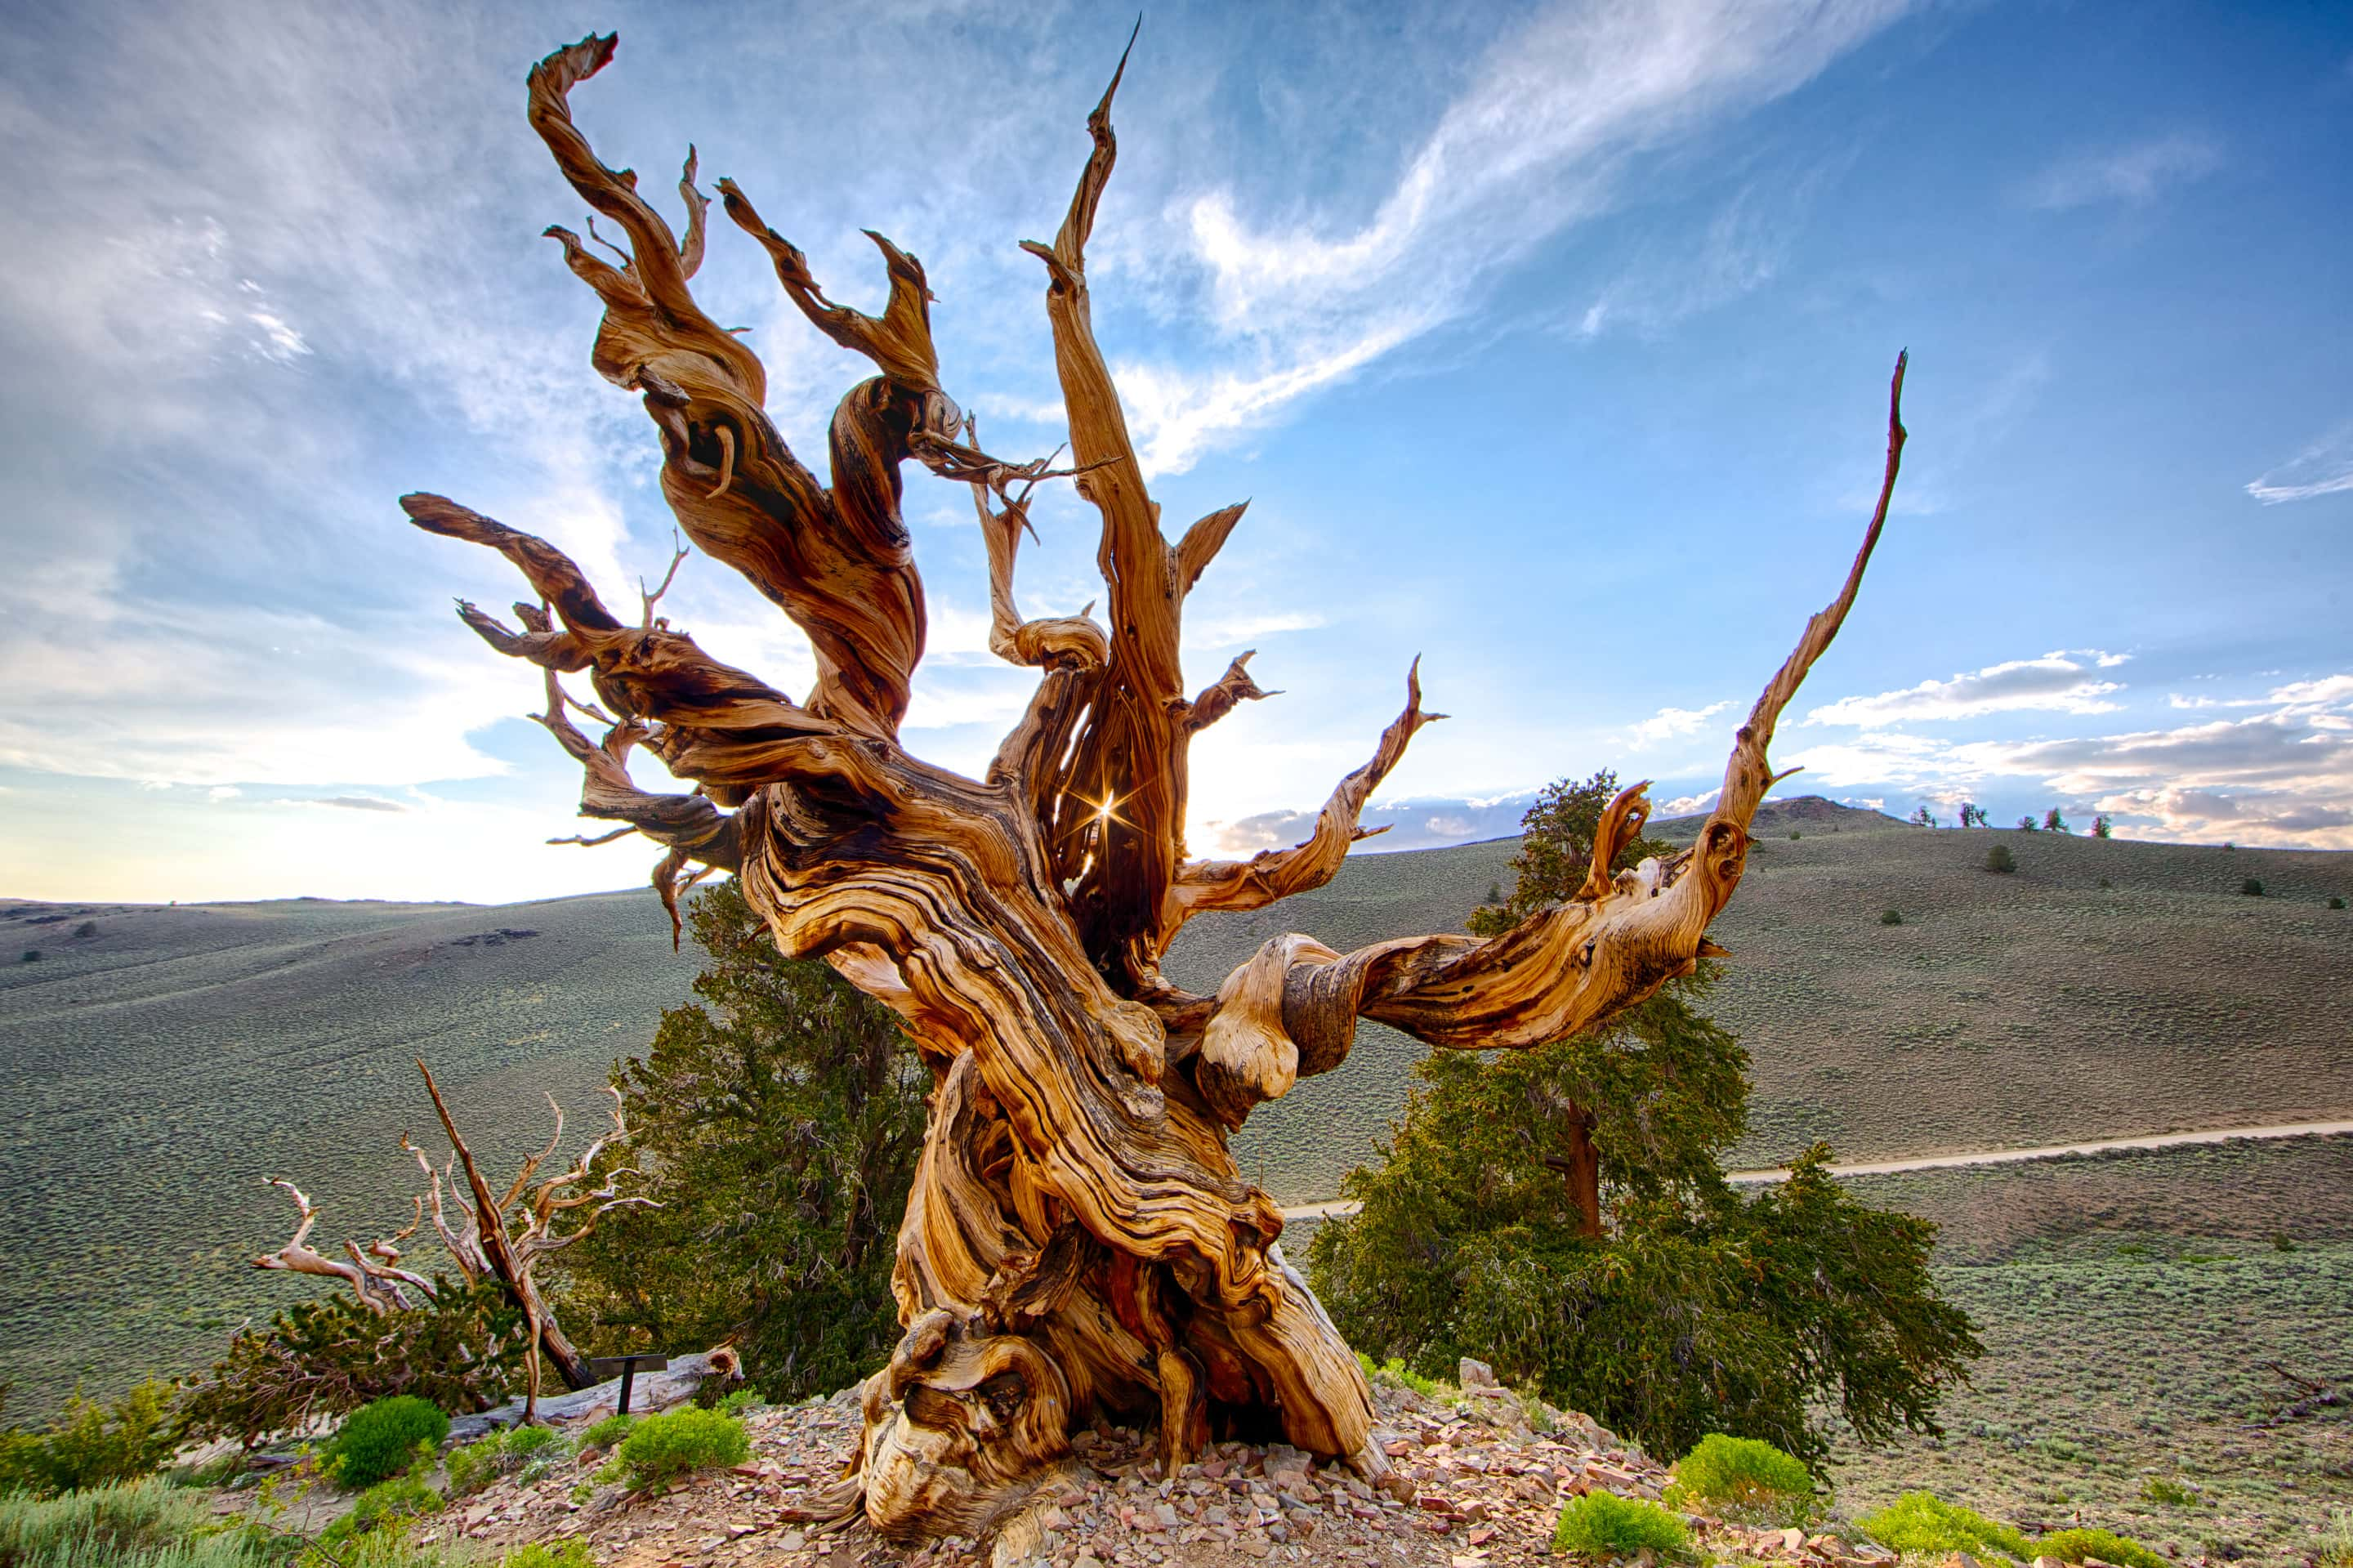 How do I find my story? Ask the Bristlecone Pine.